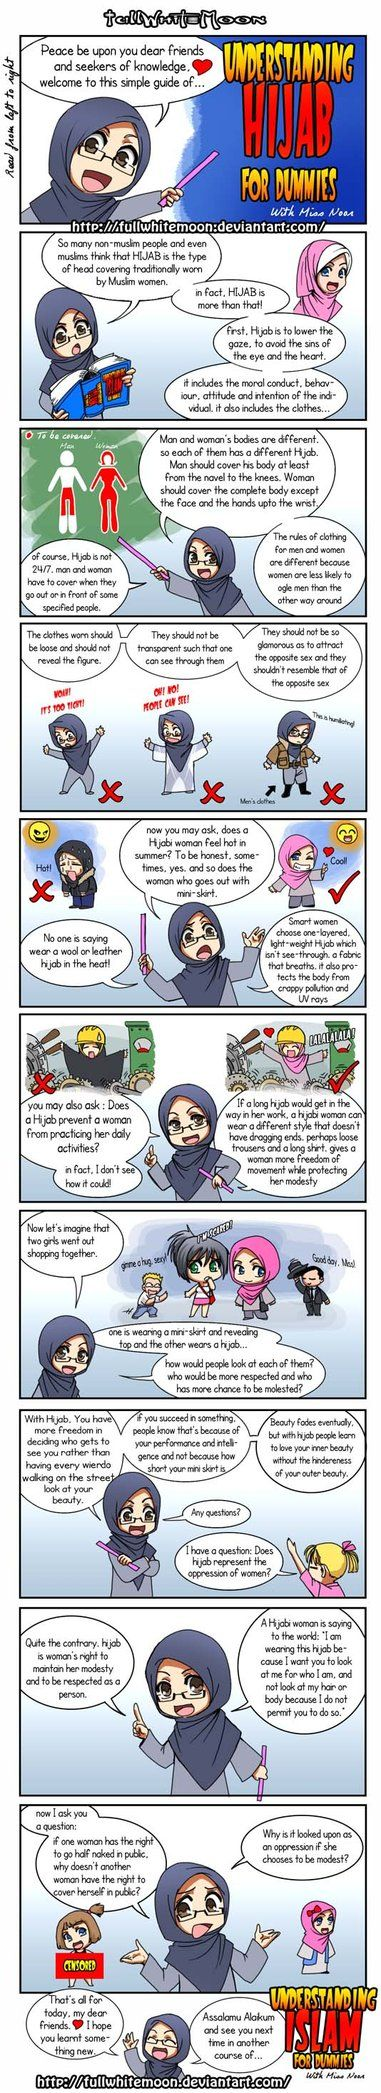 Understanding Hijab 4 dummies by FullWhiteMoon